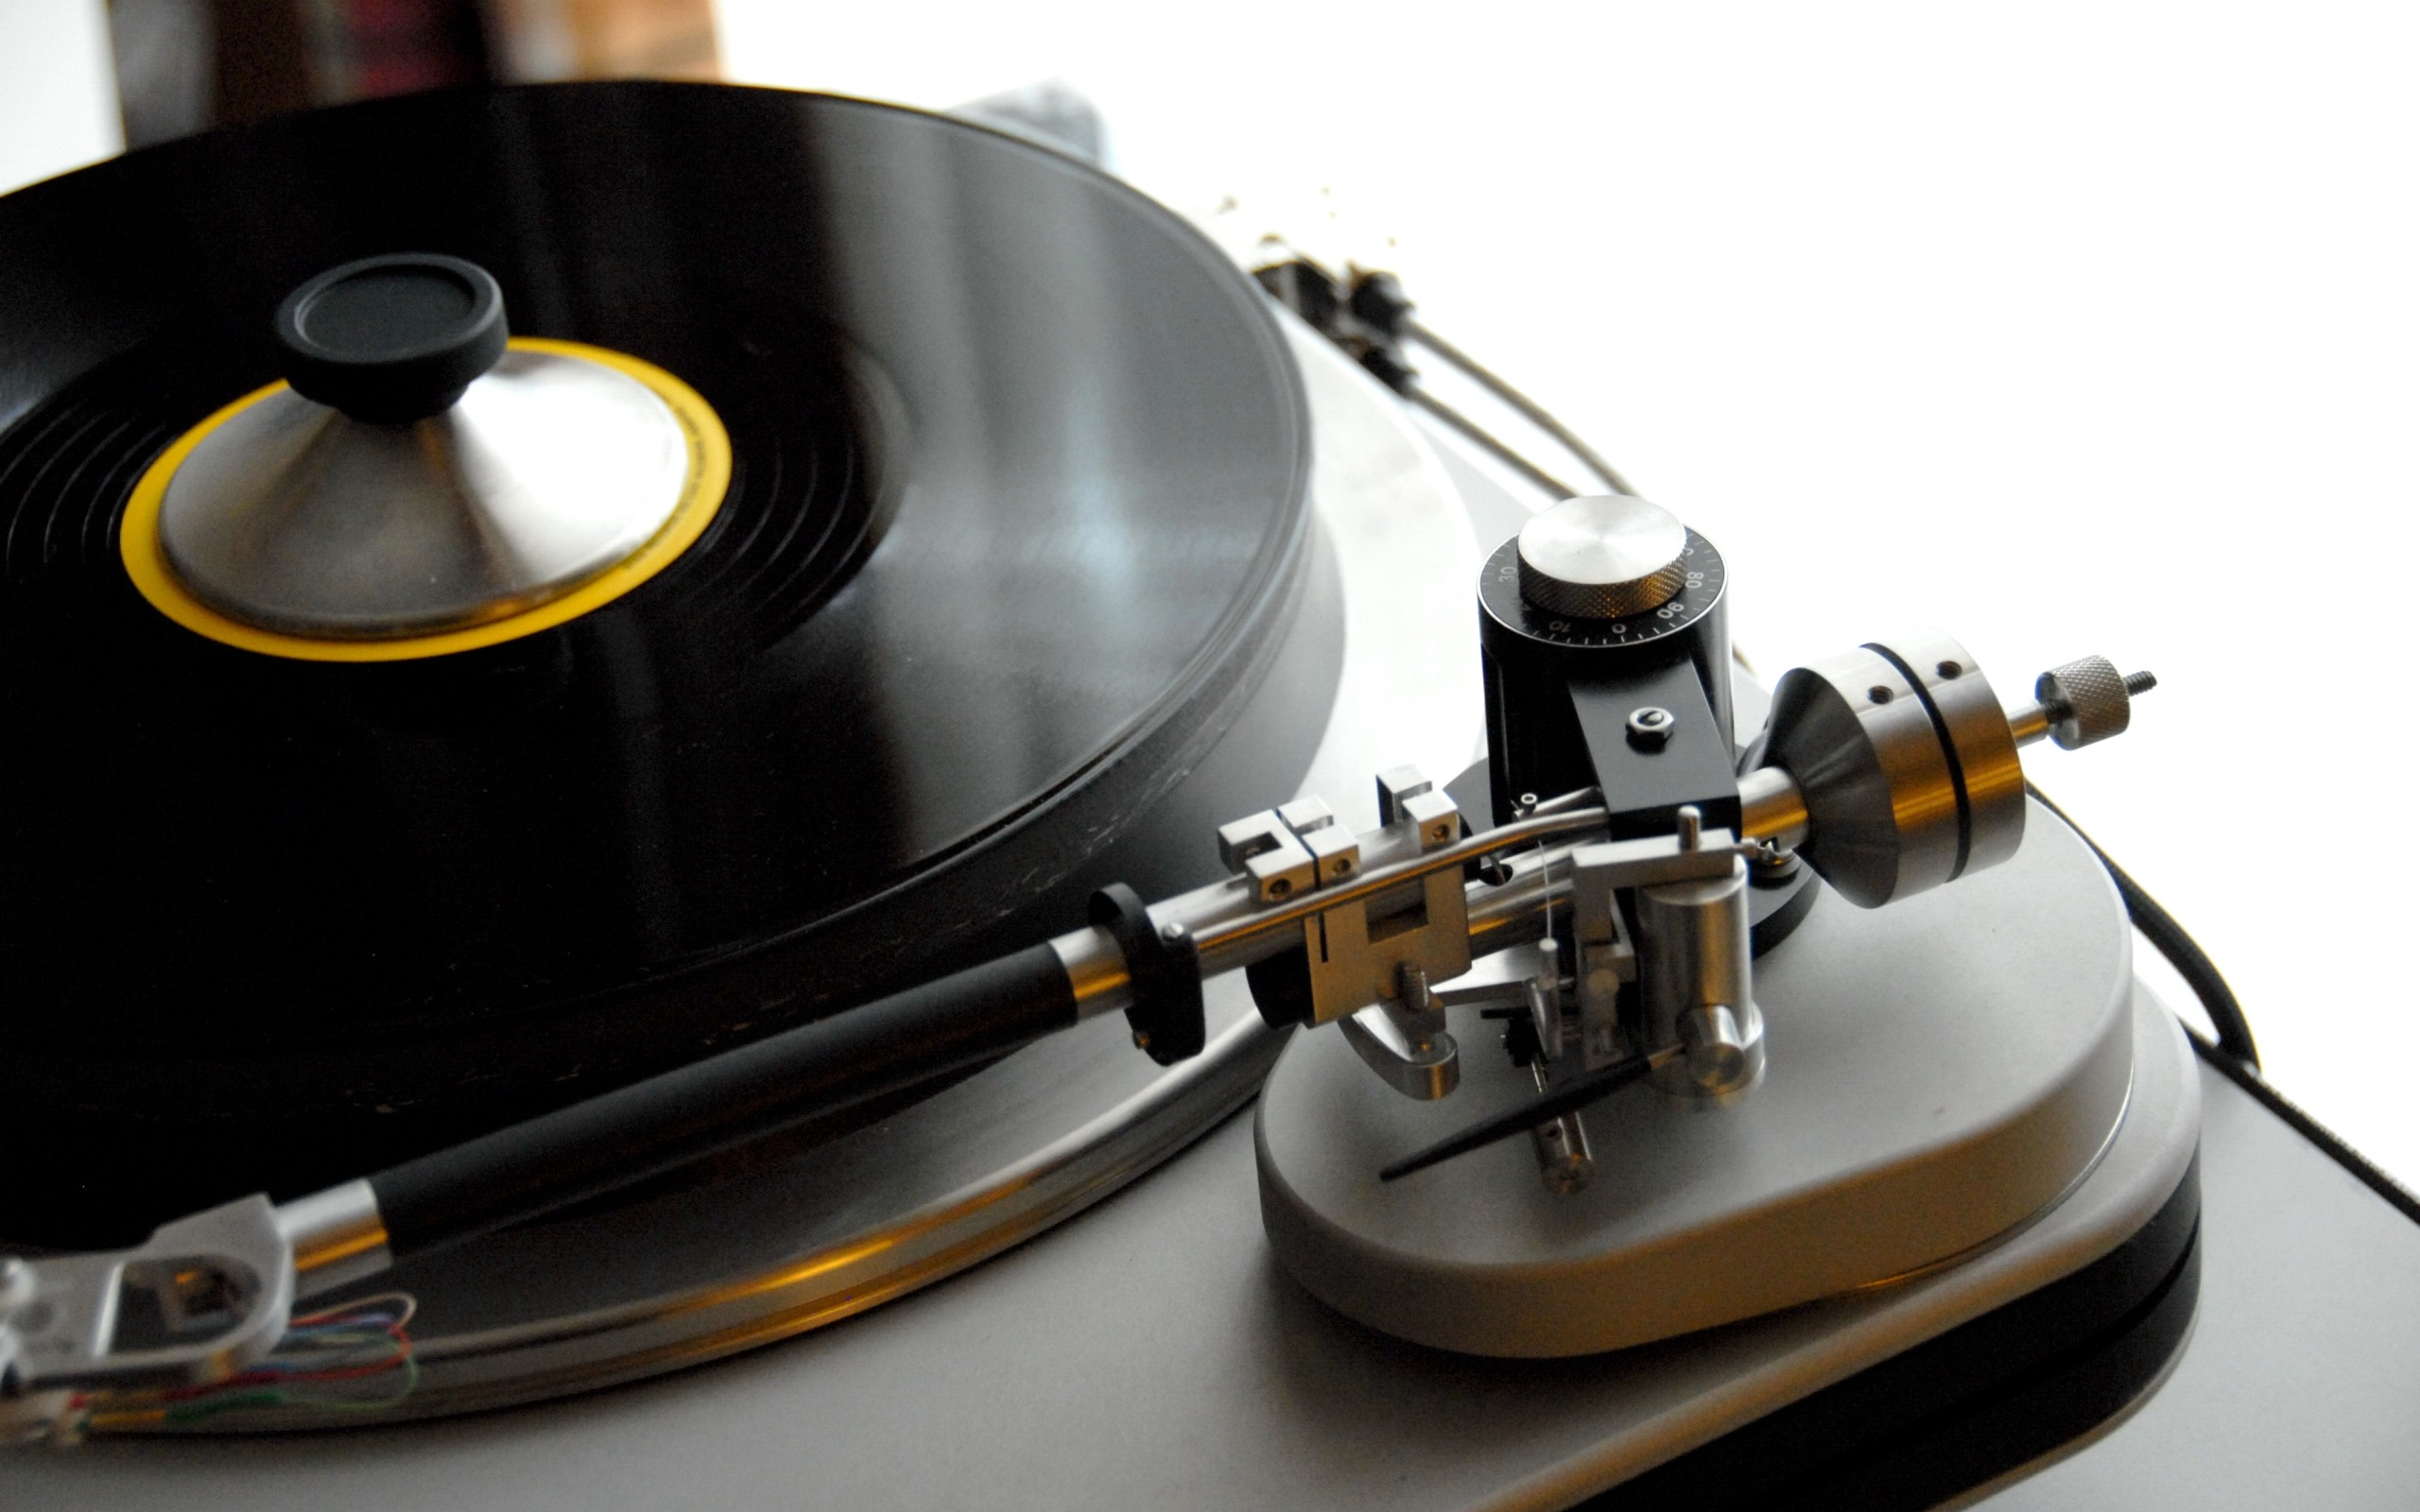 Vinyl Record Player Wallpaper Vinyl record player wallpaper